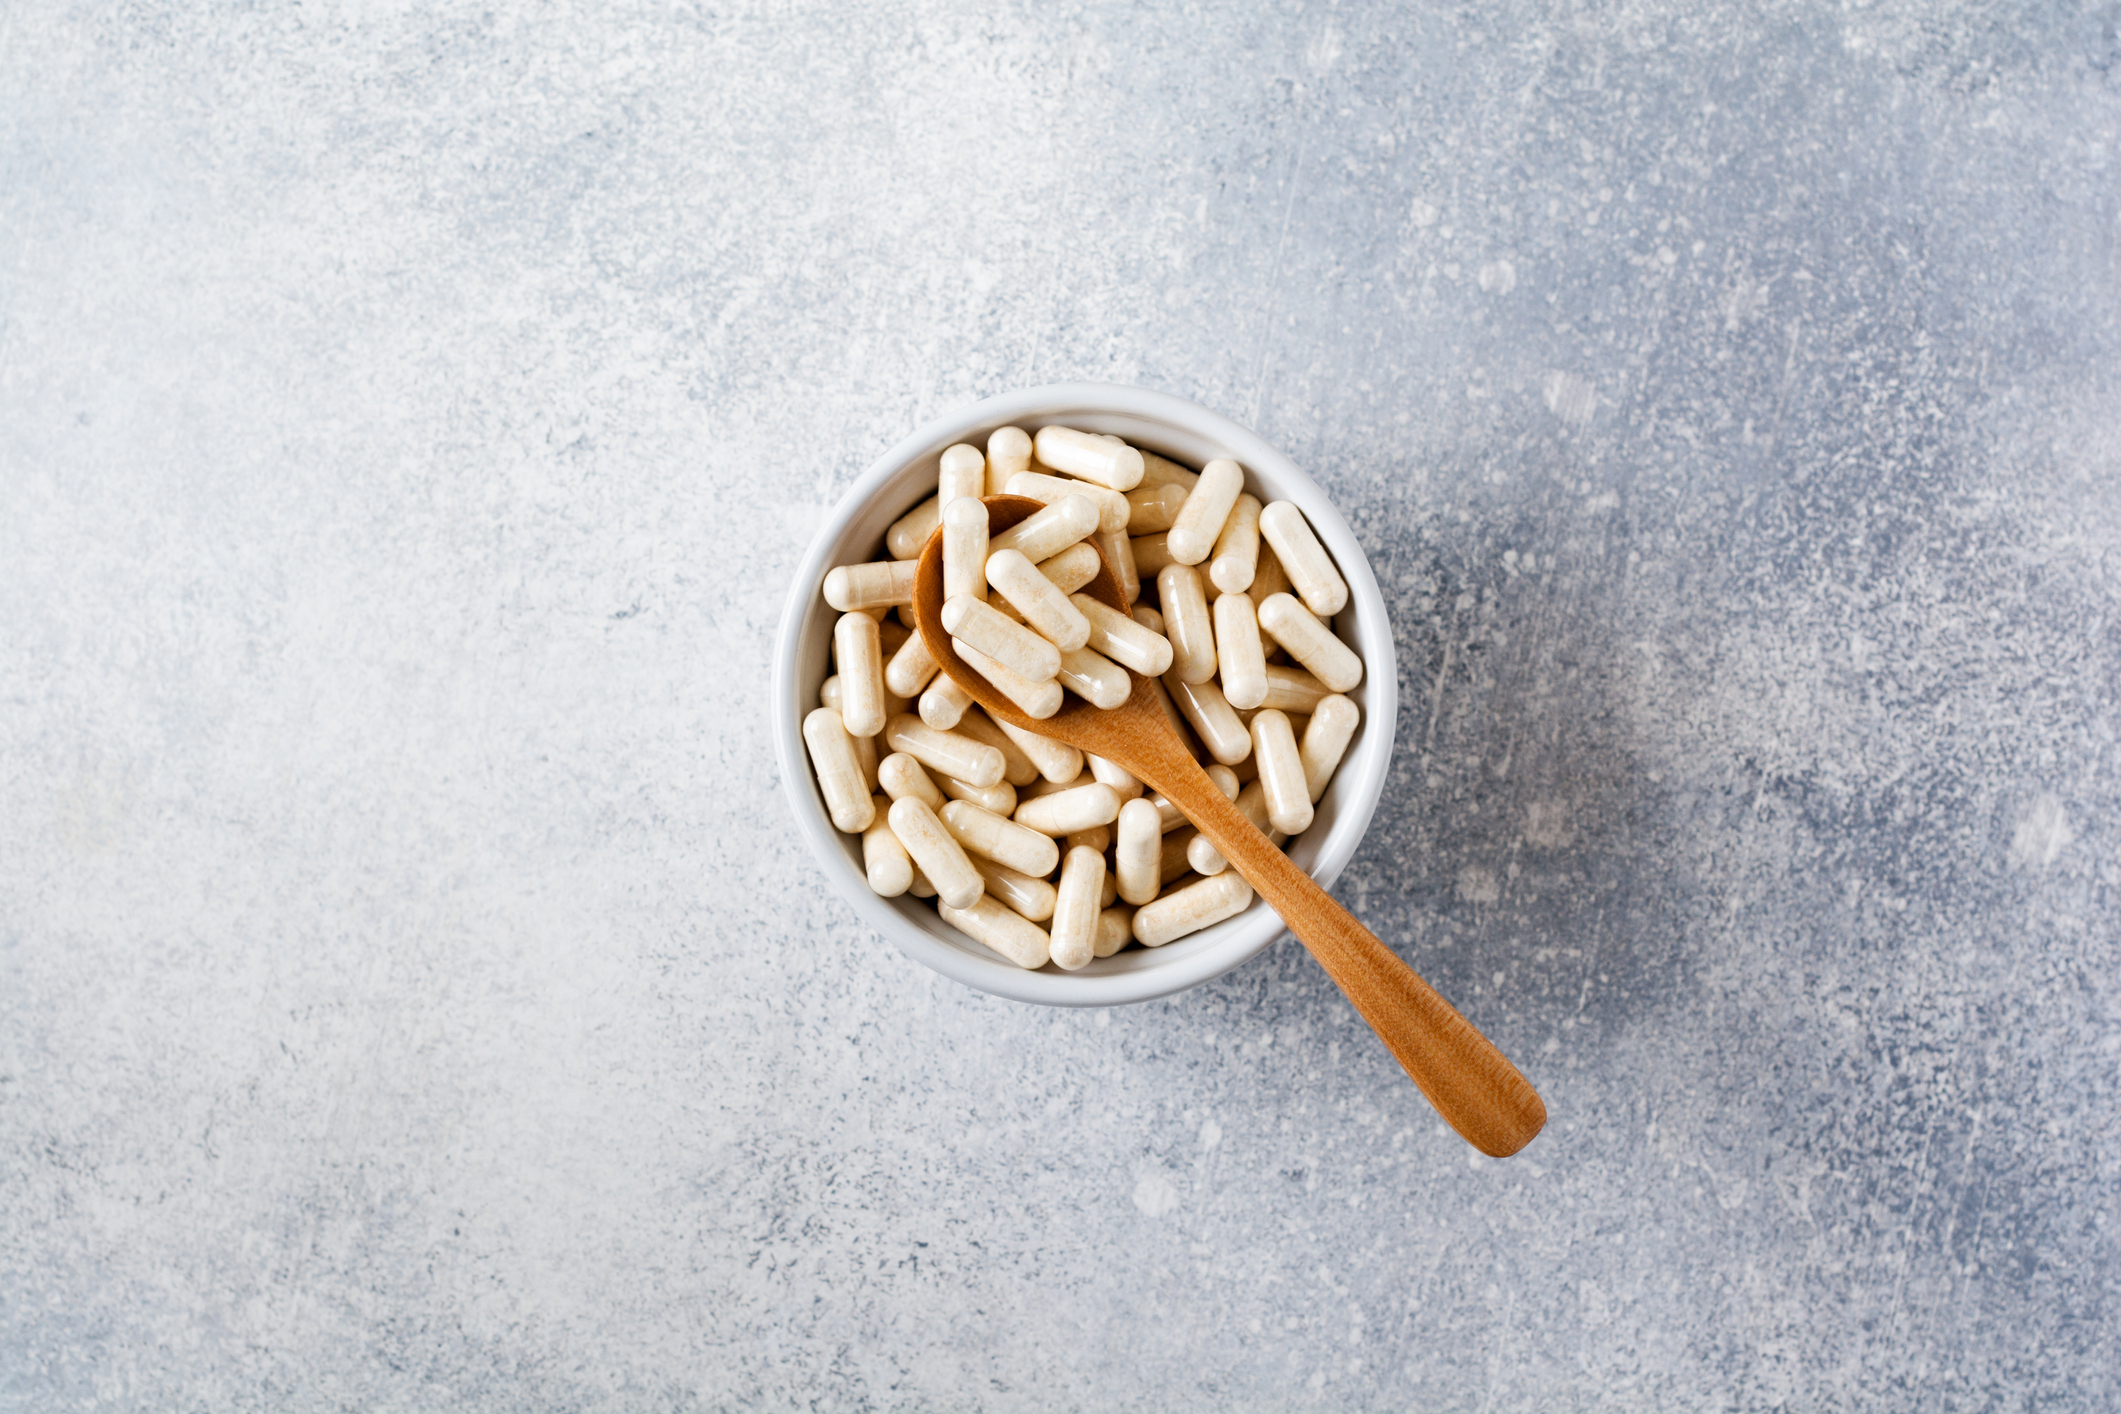 Simple hack boosts effectiveness of anti-aging supplements